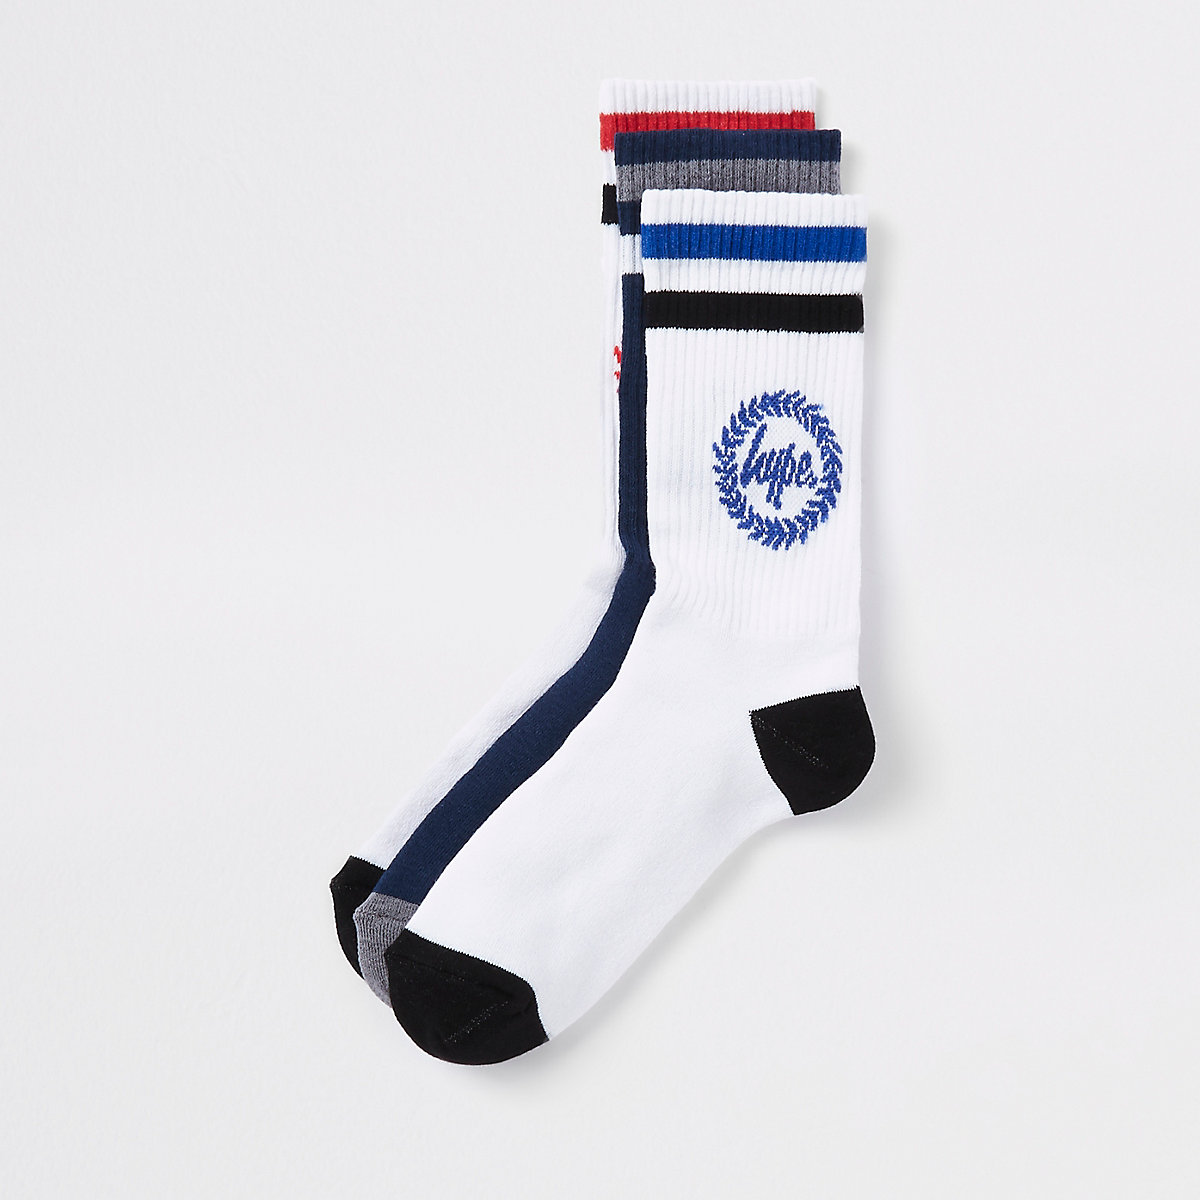 Hype navy crest print socks 5 pack